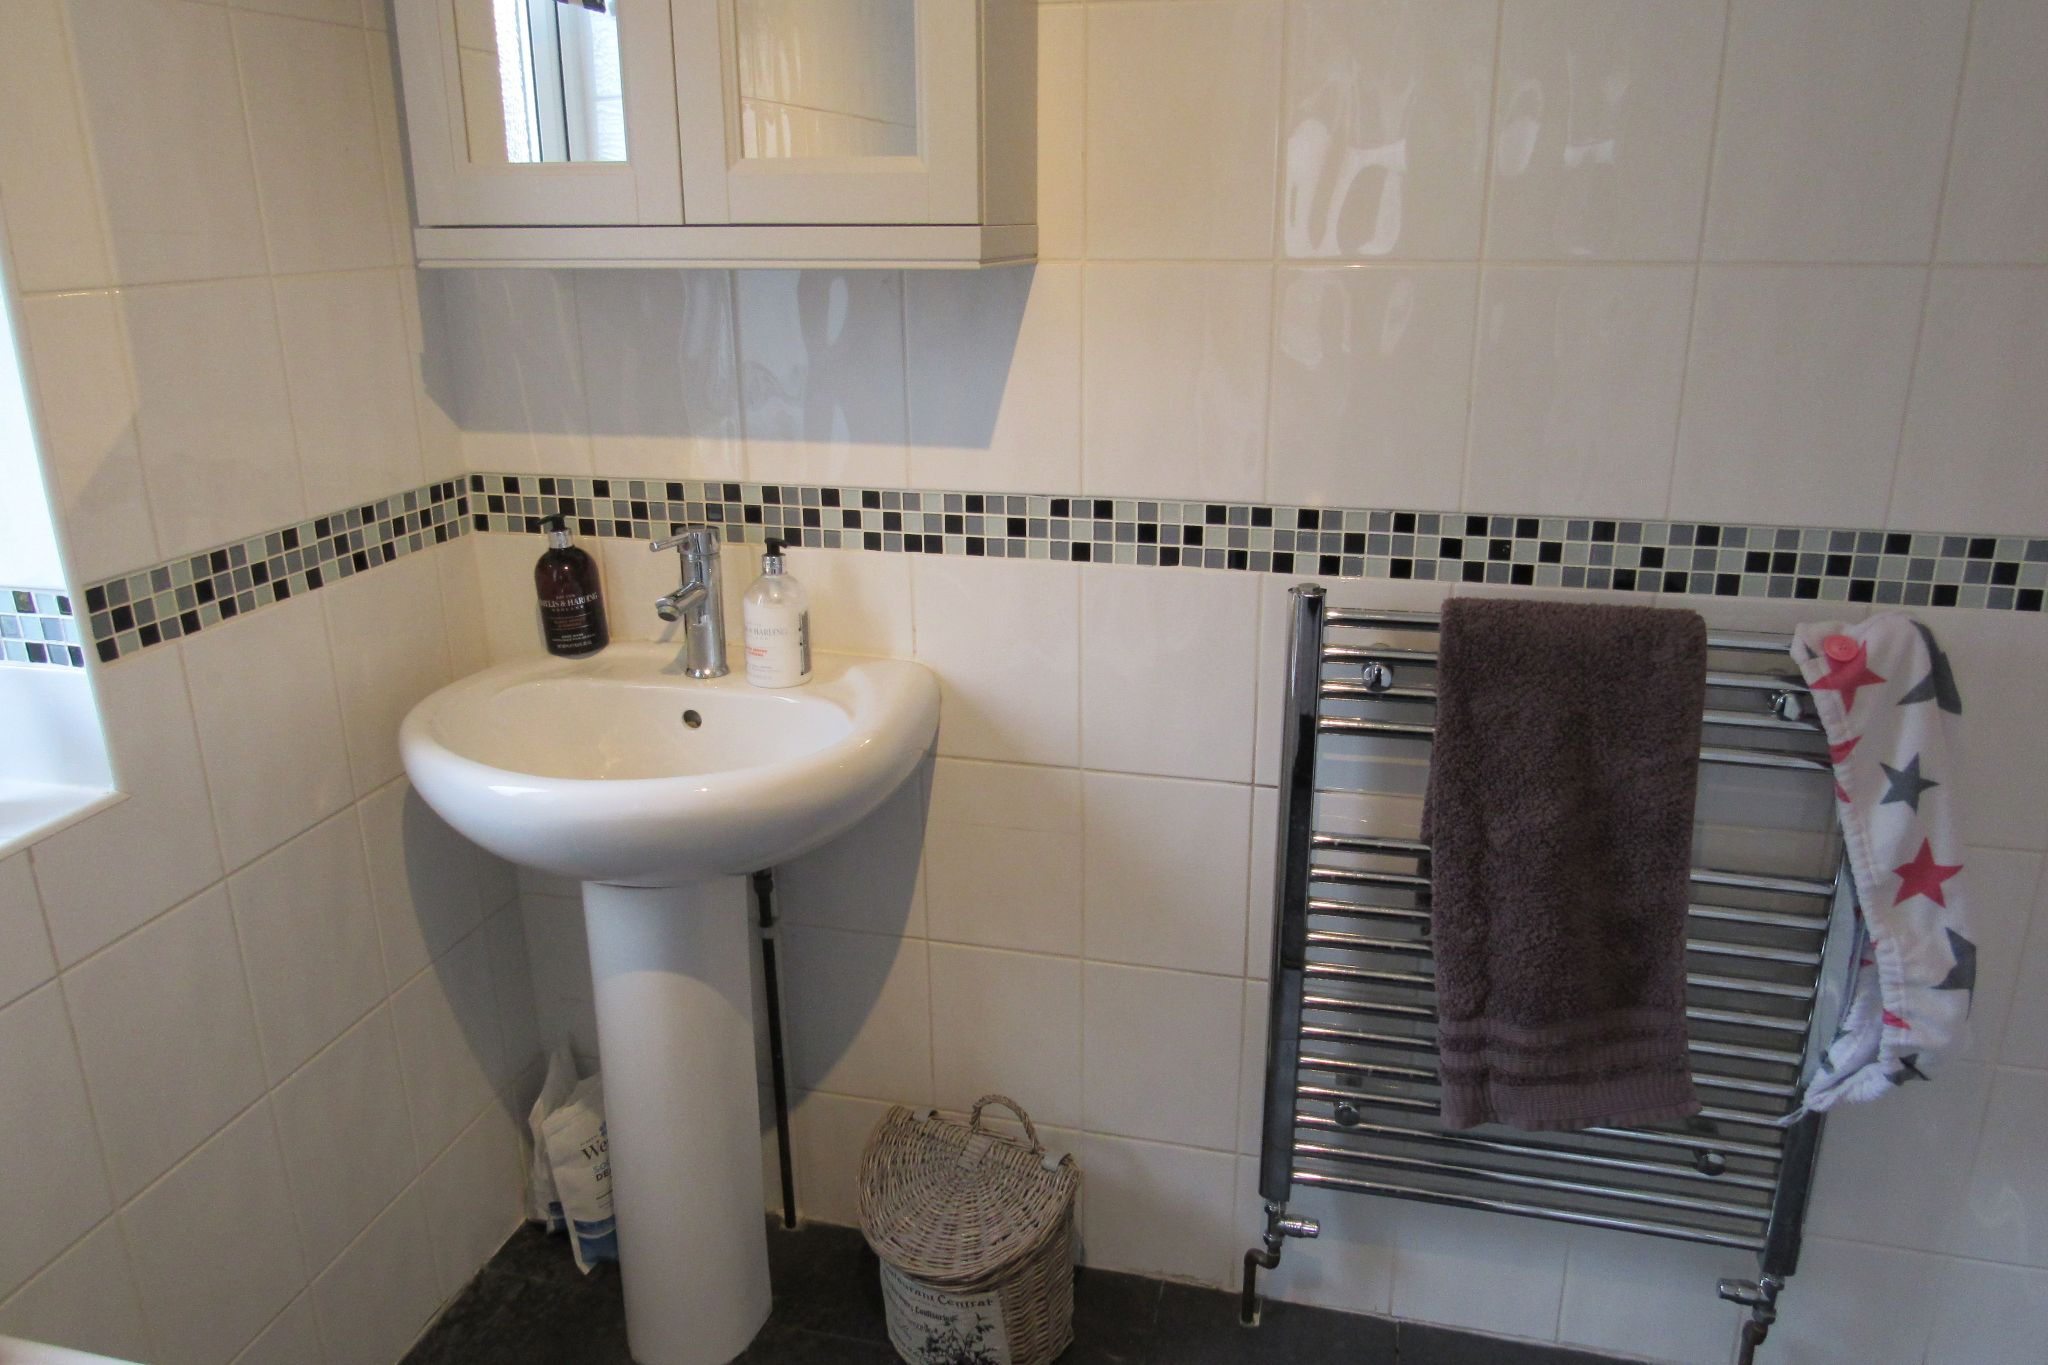 3 bedroom detached house For Sale in Manchester - Photograph 16.